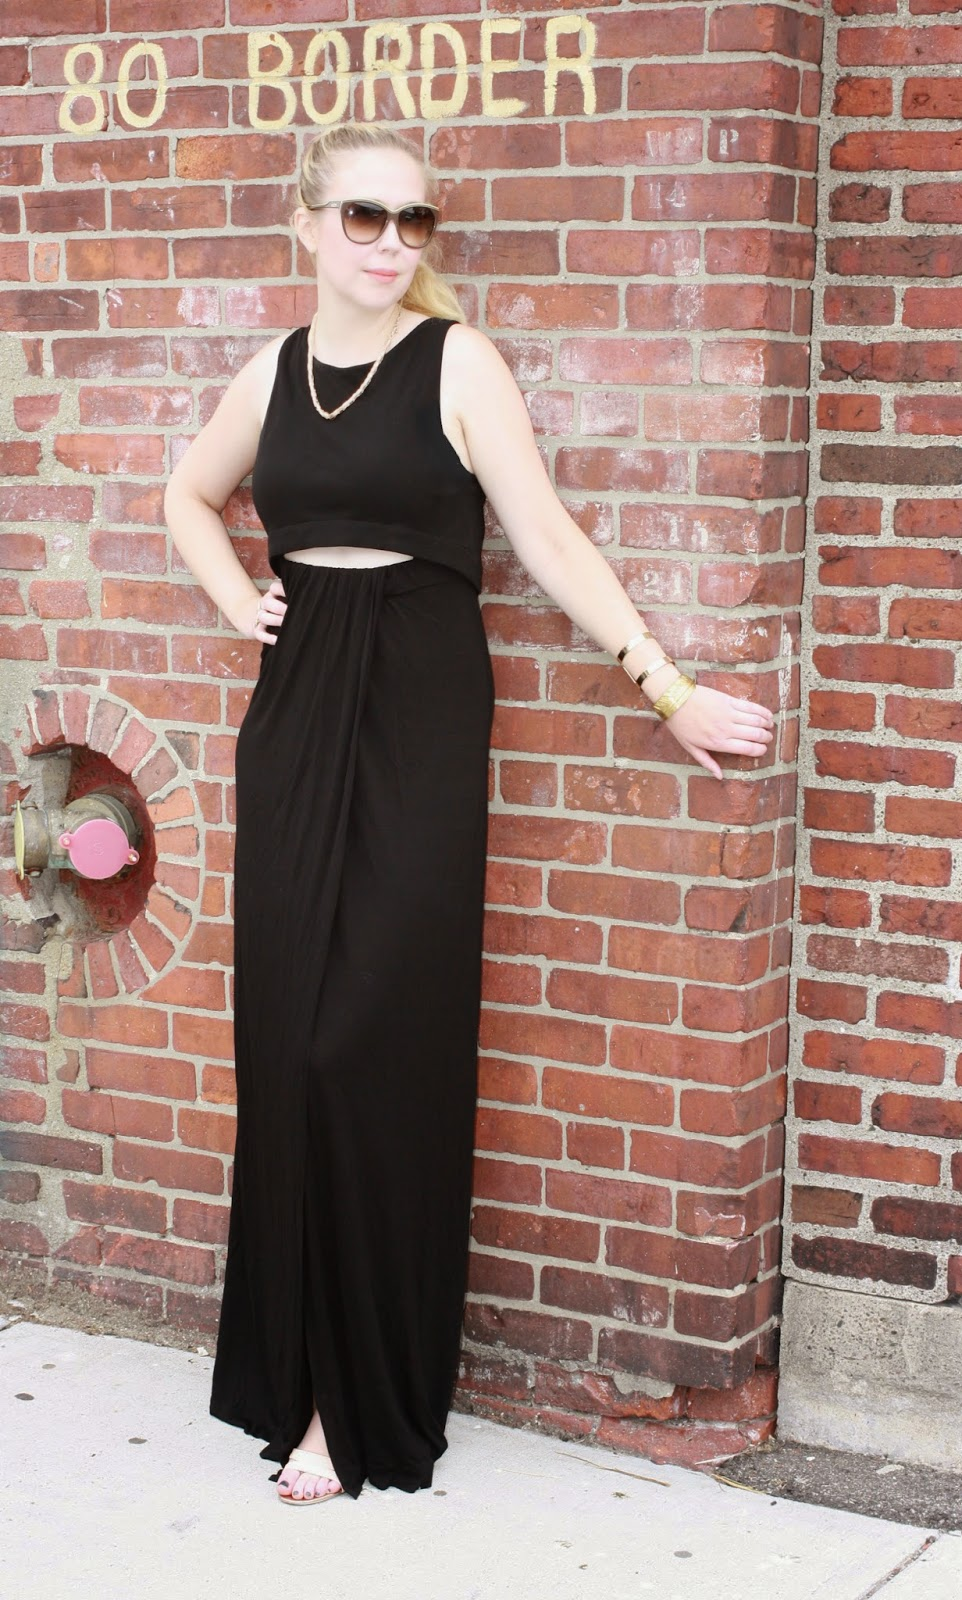 How To Wear A Maxi Dress, How To Wear Gold, Outfits, Summer 2014, Boston Blogger, Boston Fashion Blog, Boston Fashion, Street Style, ALC, Intermix, Intermix Chestnut Hill, ALC Florentine Dress, How to Wear Gold